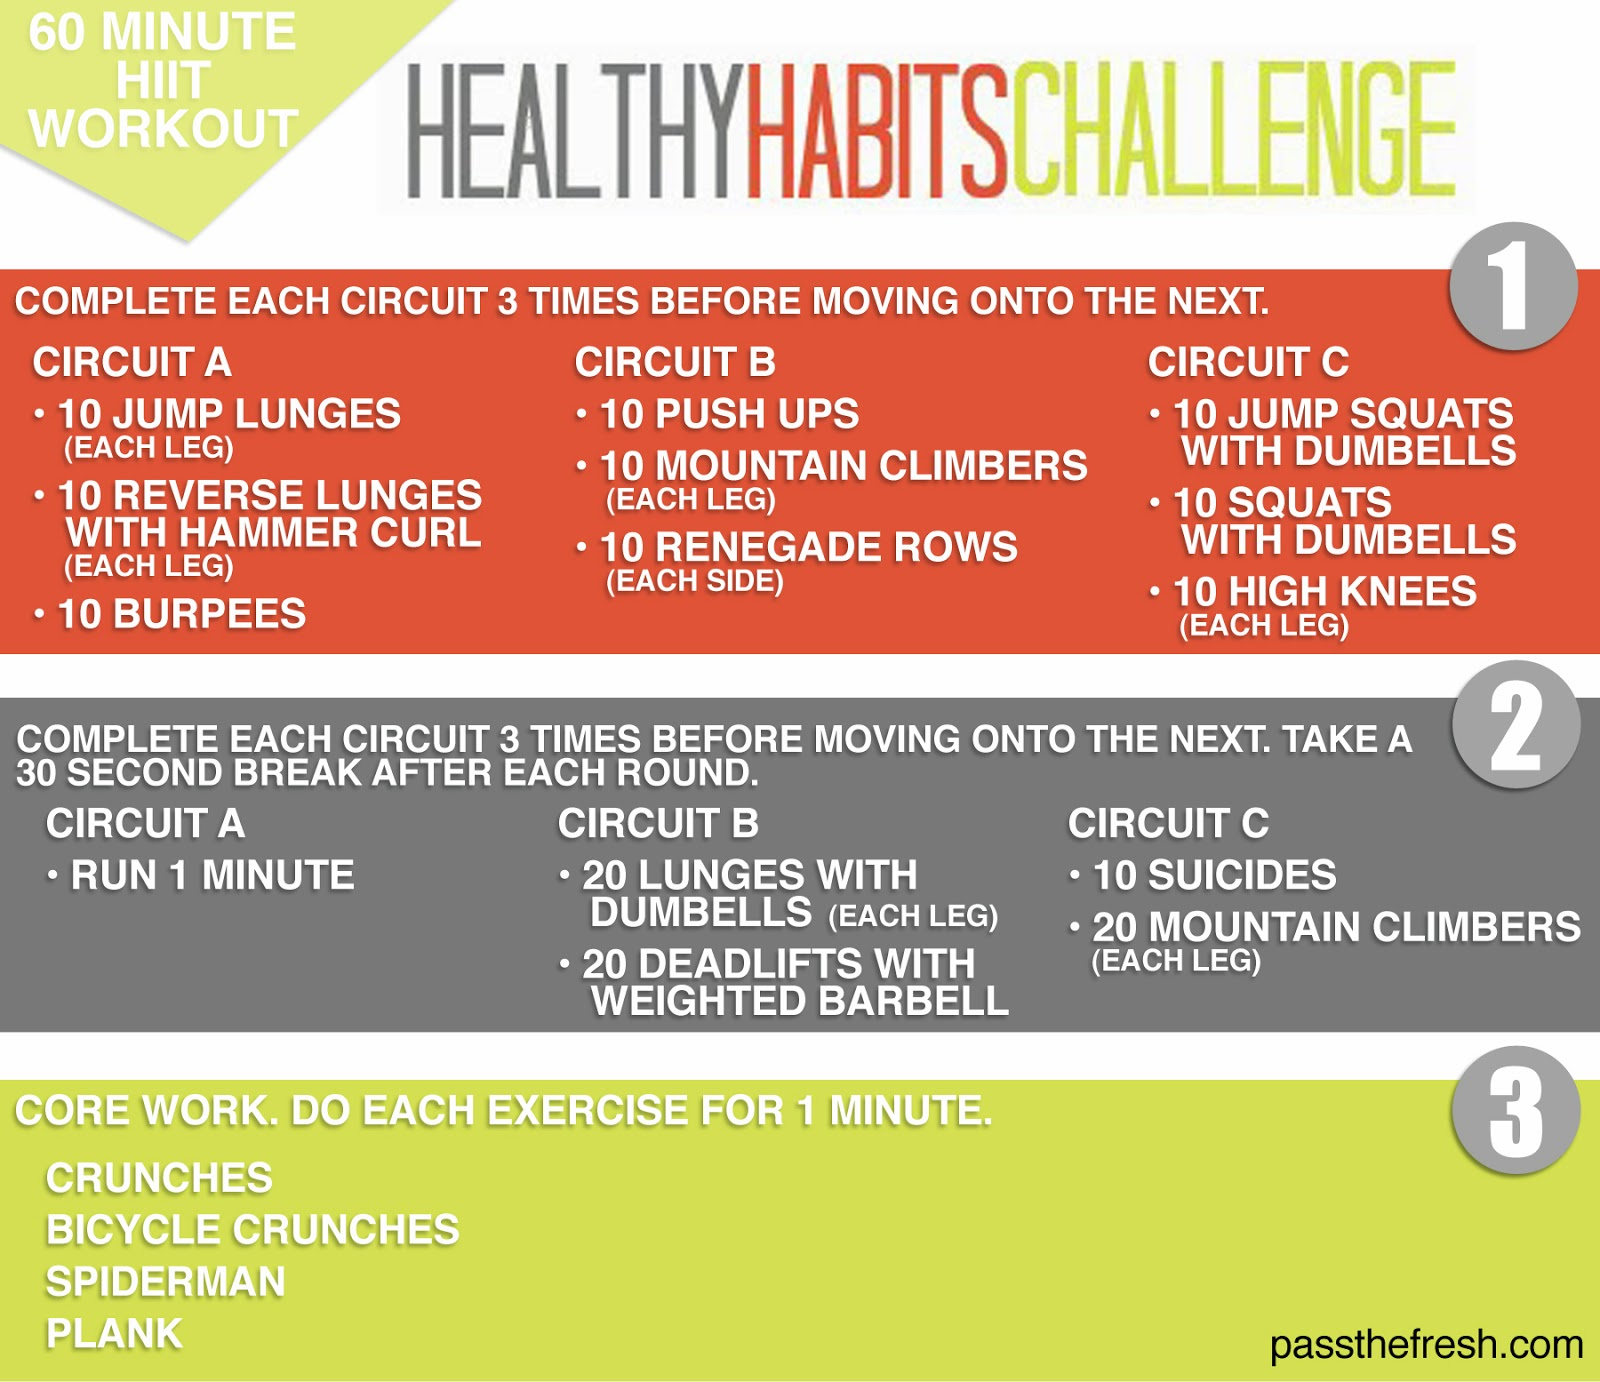 Here S One Of My Latest Graphic Workouts To Demonstrate: Pass The Fresh: Healthy Habits Challenge: January Weight